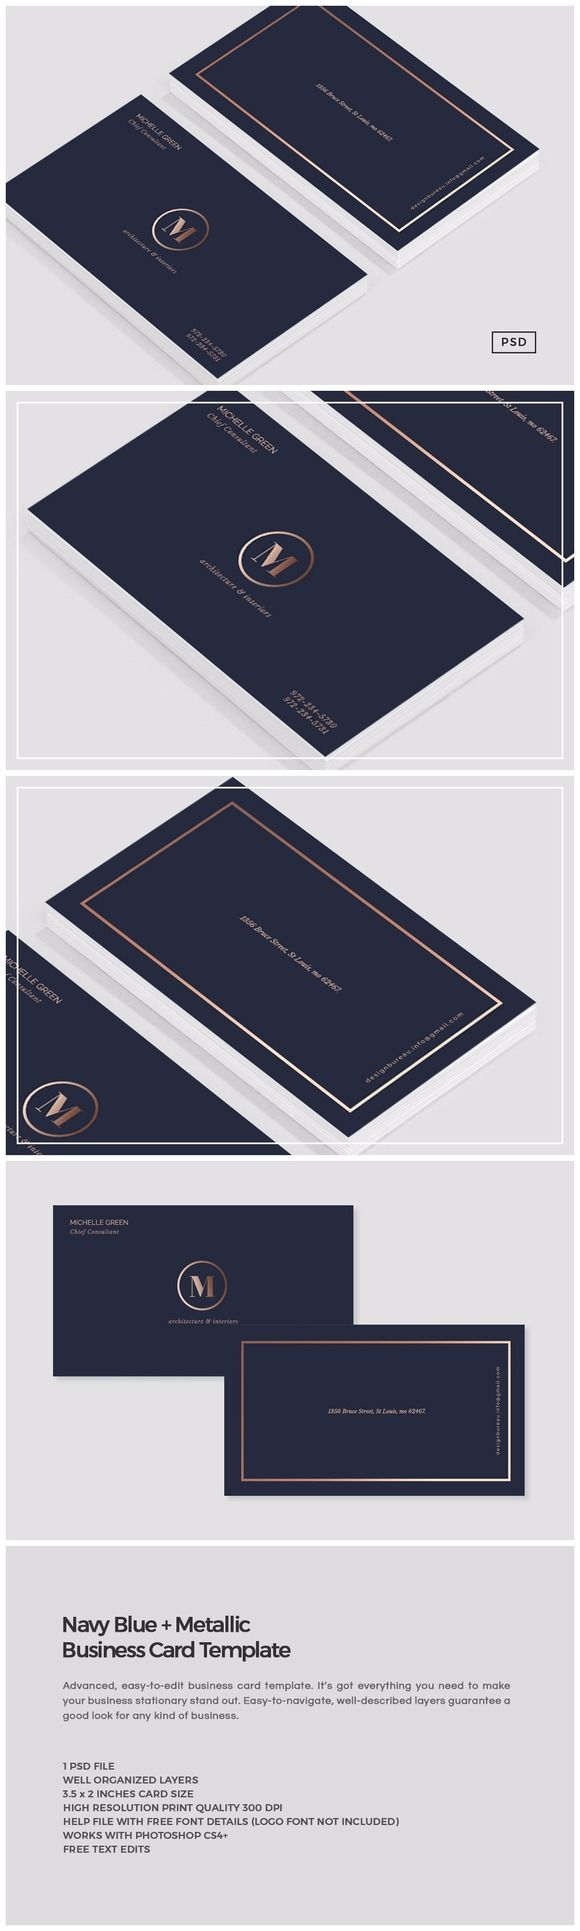 Navy Blue Metallic Business Card by The Design Label on @creativemarket